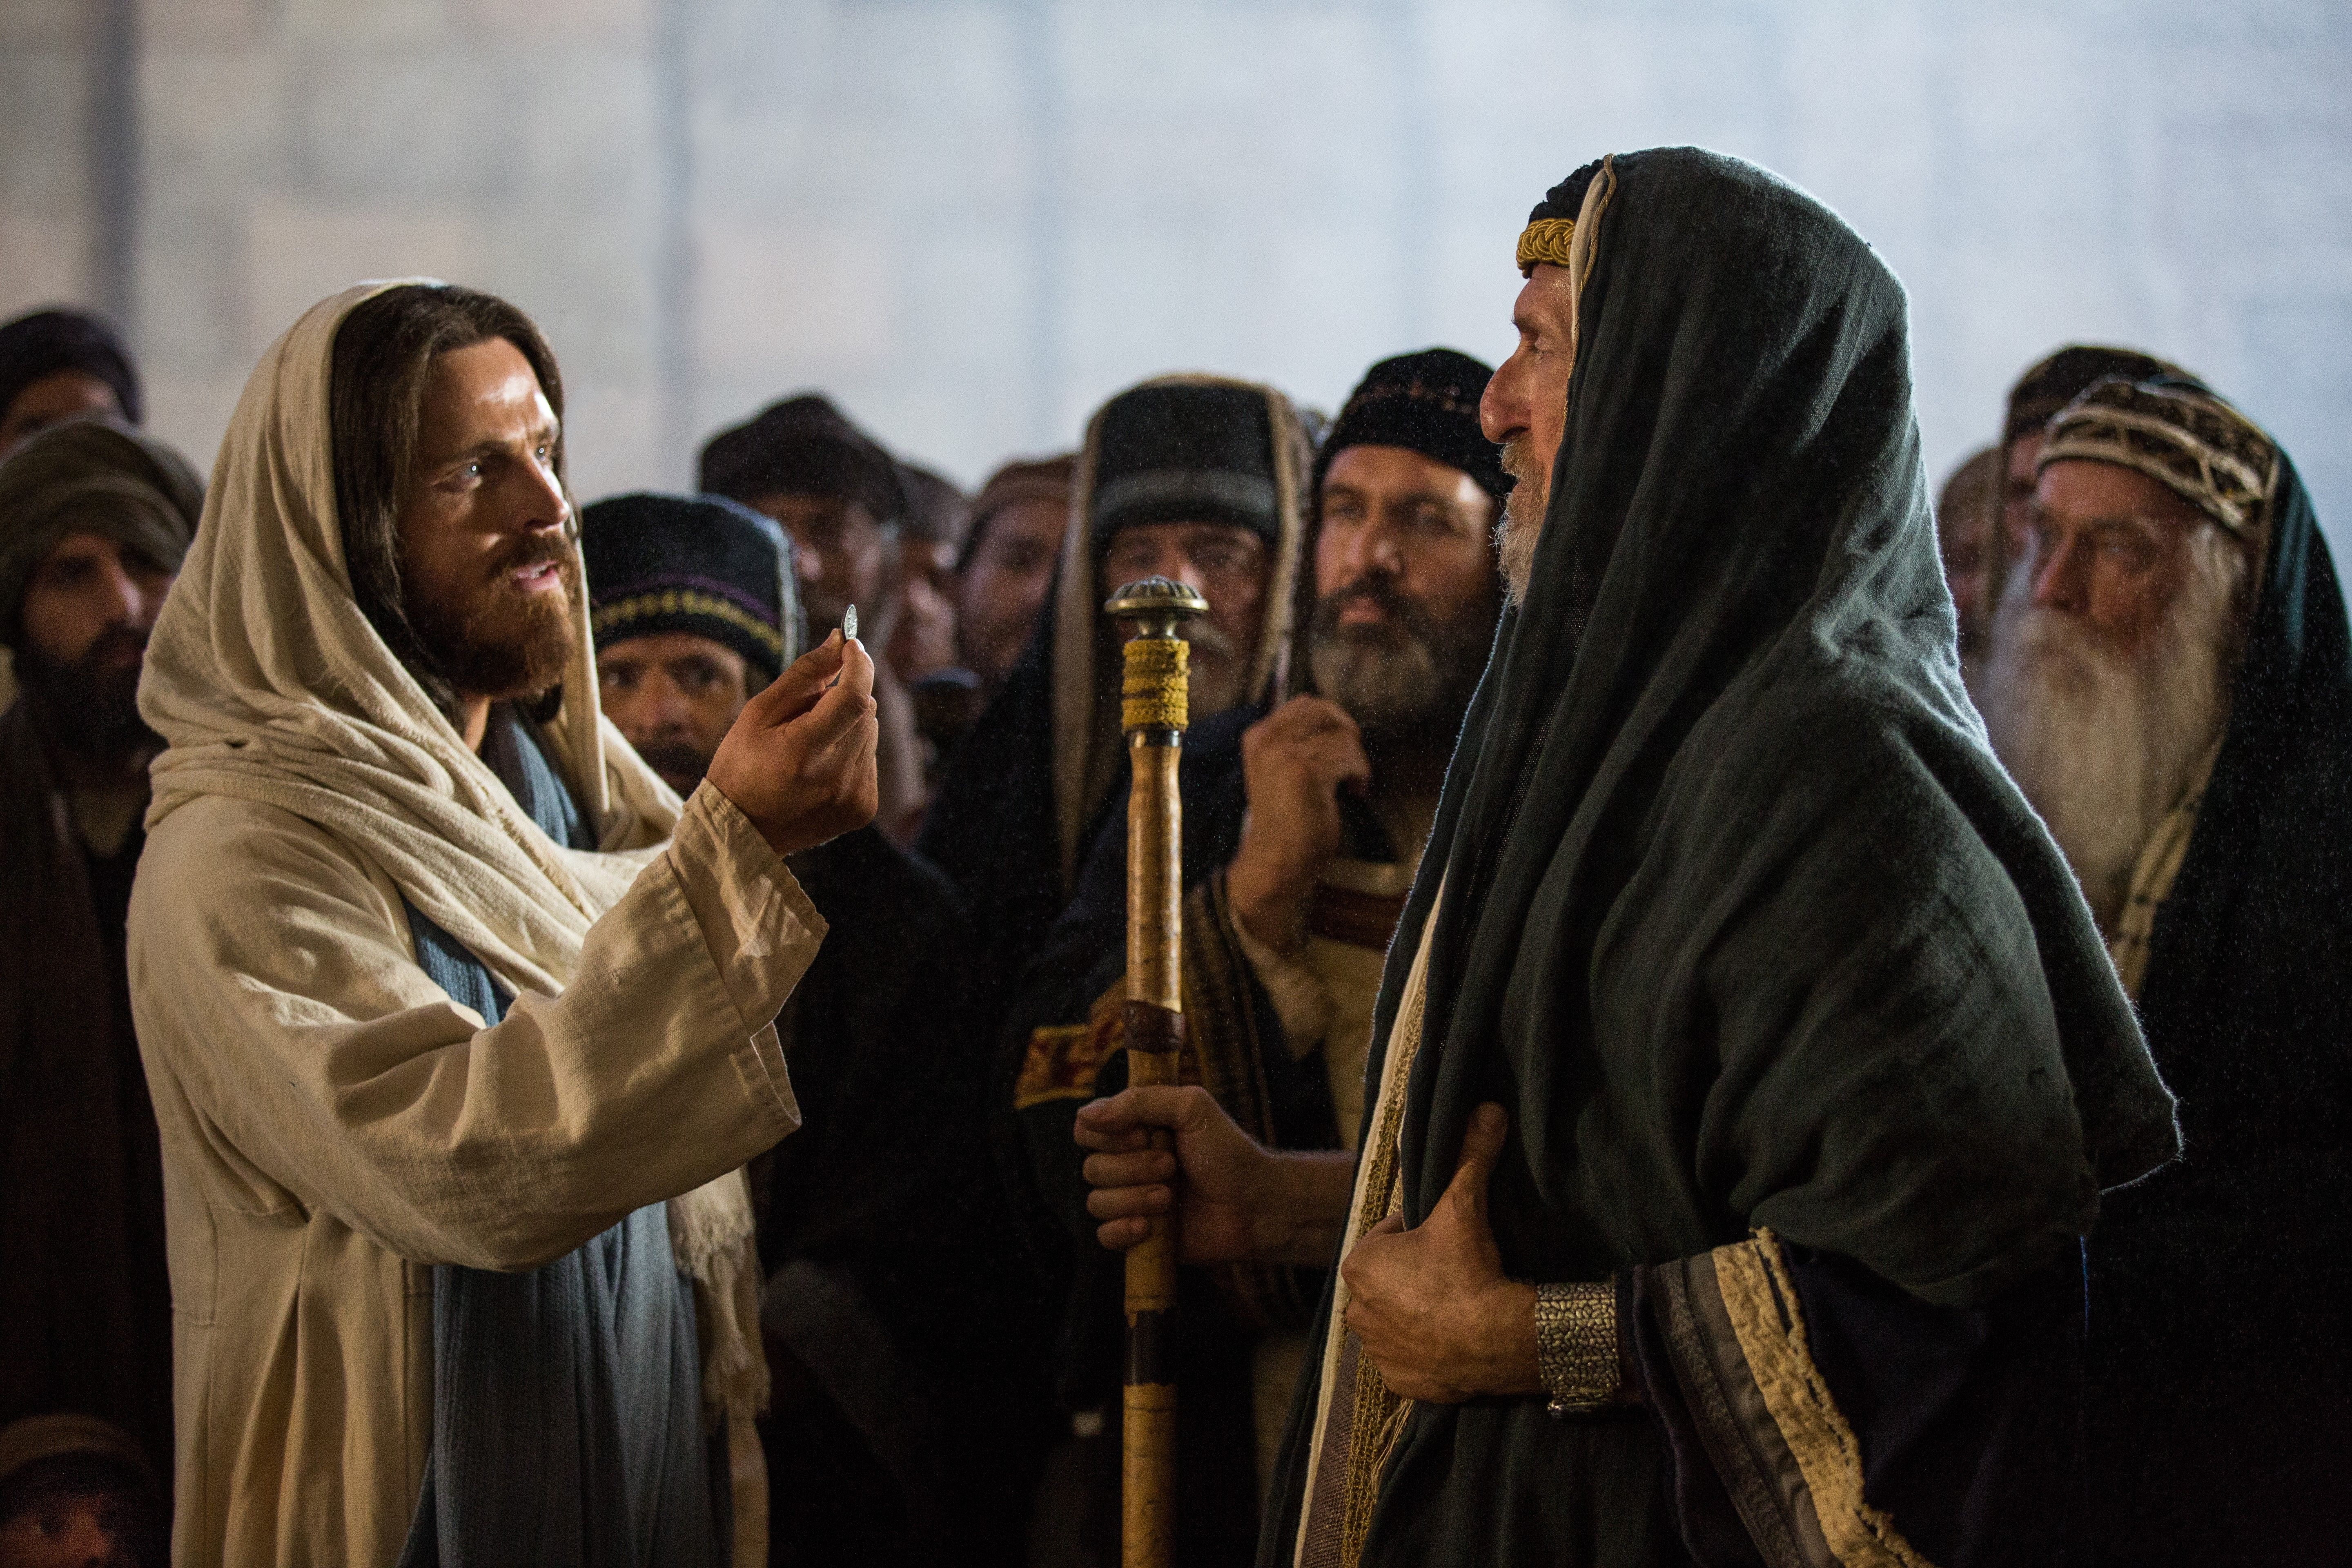 """Jesus telling the Pharisees to """"render to Caesar the things that are Caesar's, and to God the things that are God's."""""""